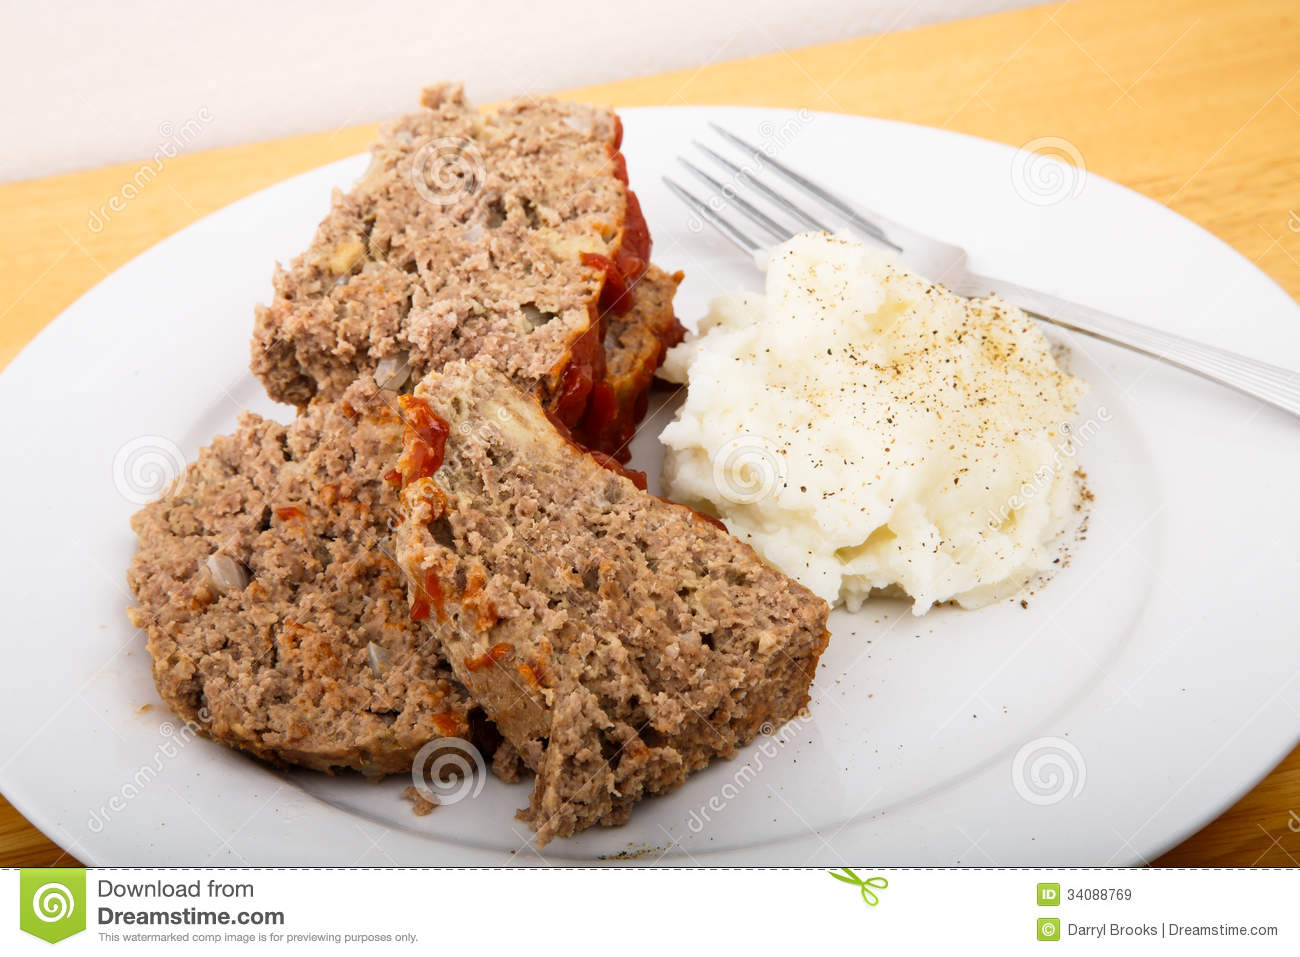 Meatloaf And Mashed Potatoes Royalty Free Stock Images   Image